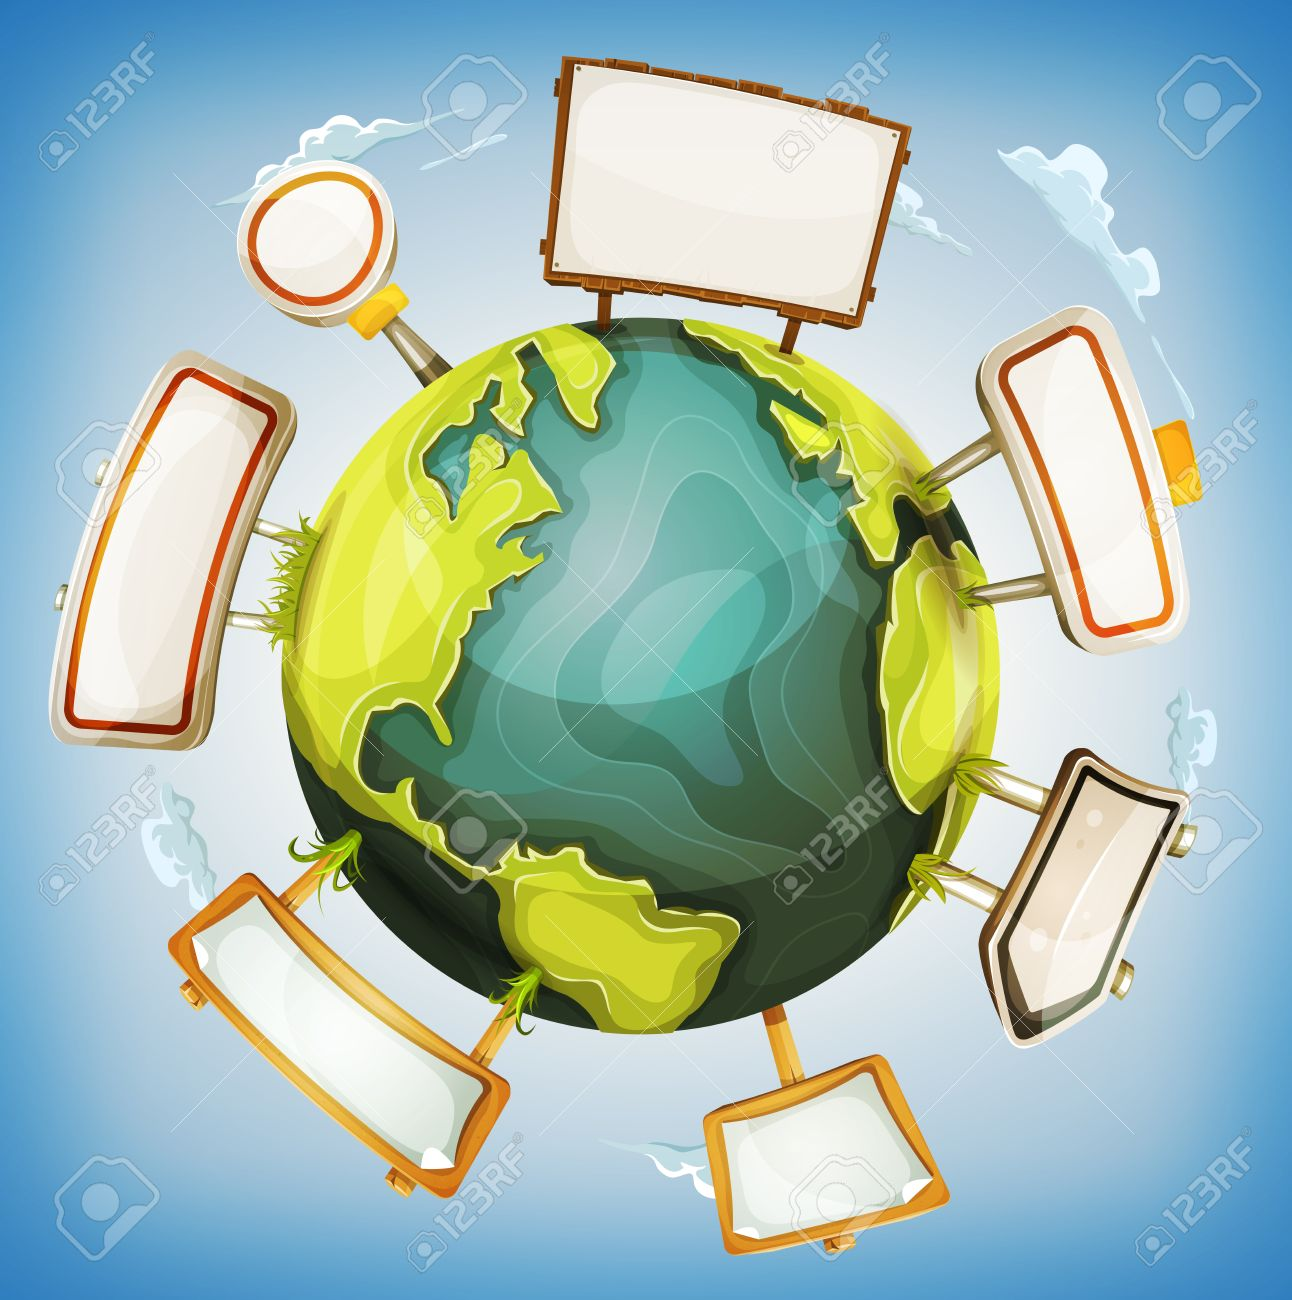 Illustration of a cartoon design 360 degree earth planet globe with road and wood signs elements around - 47620266